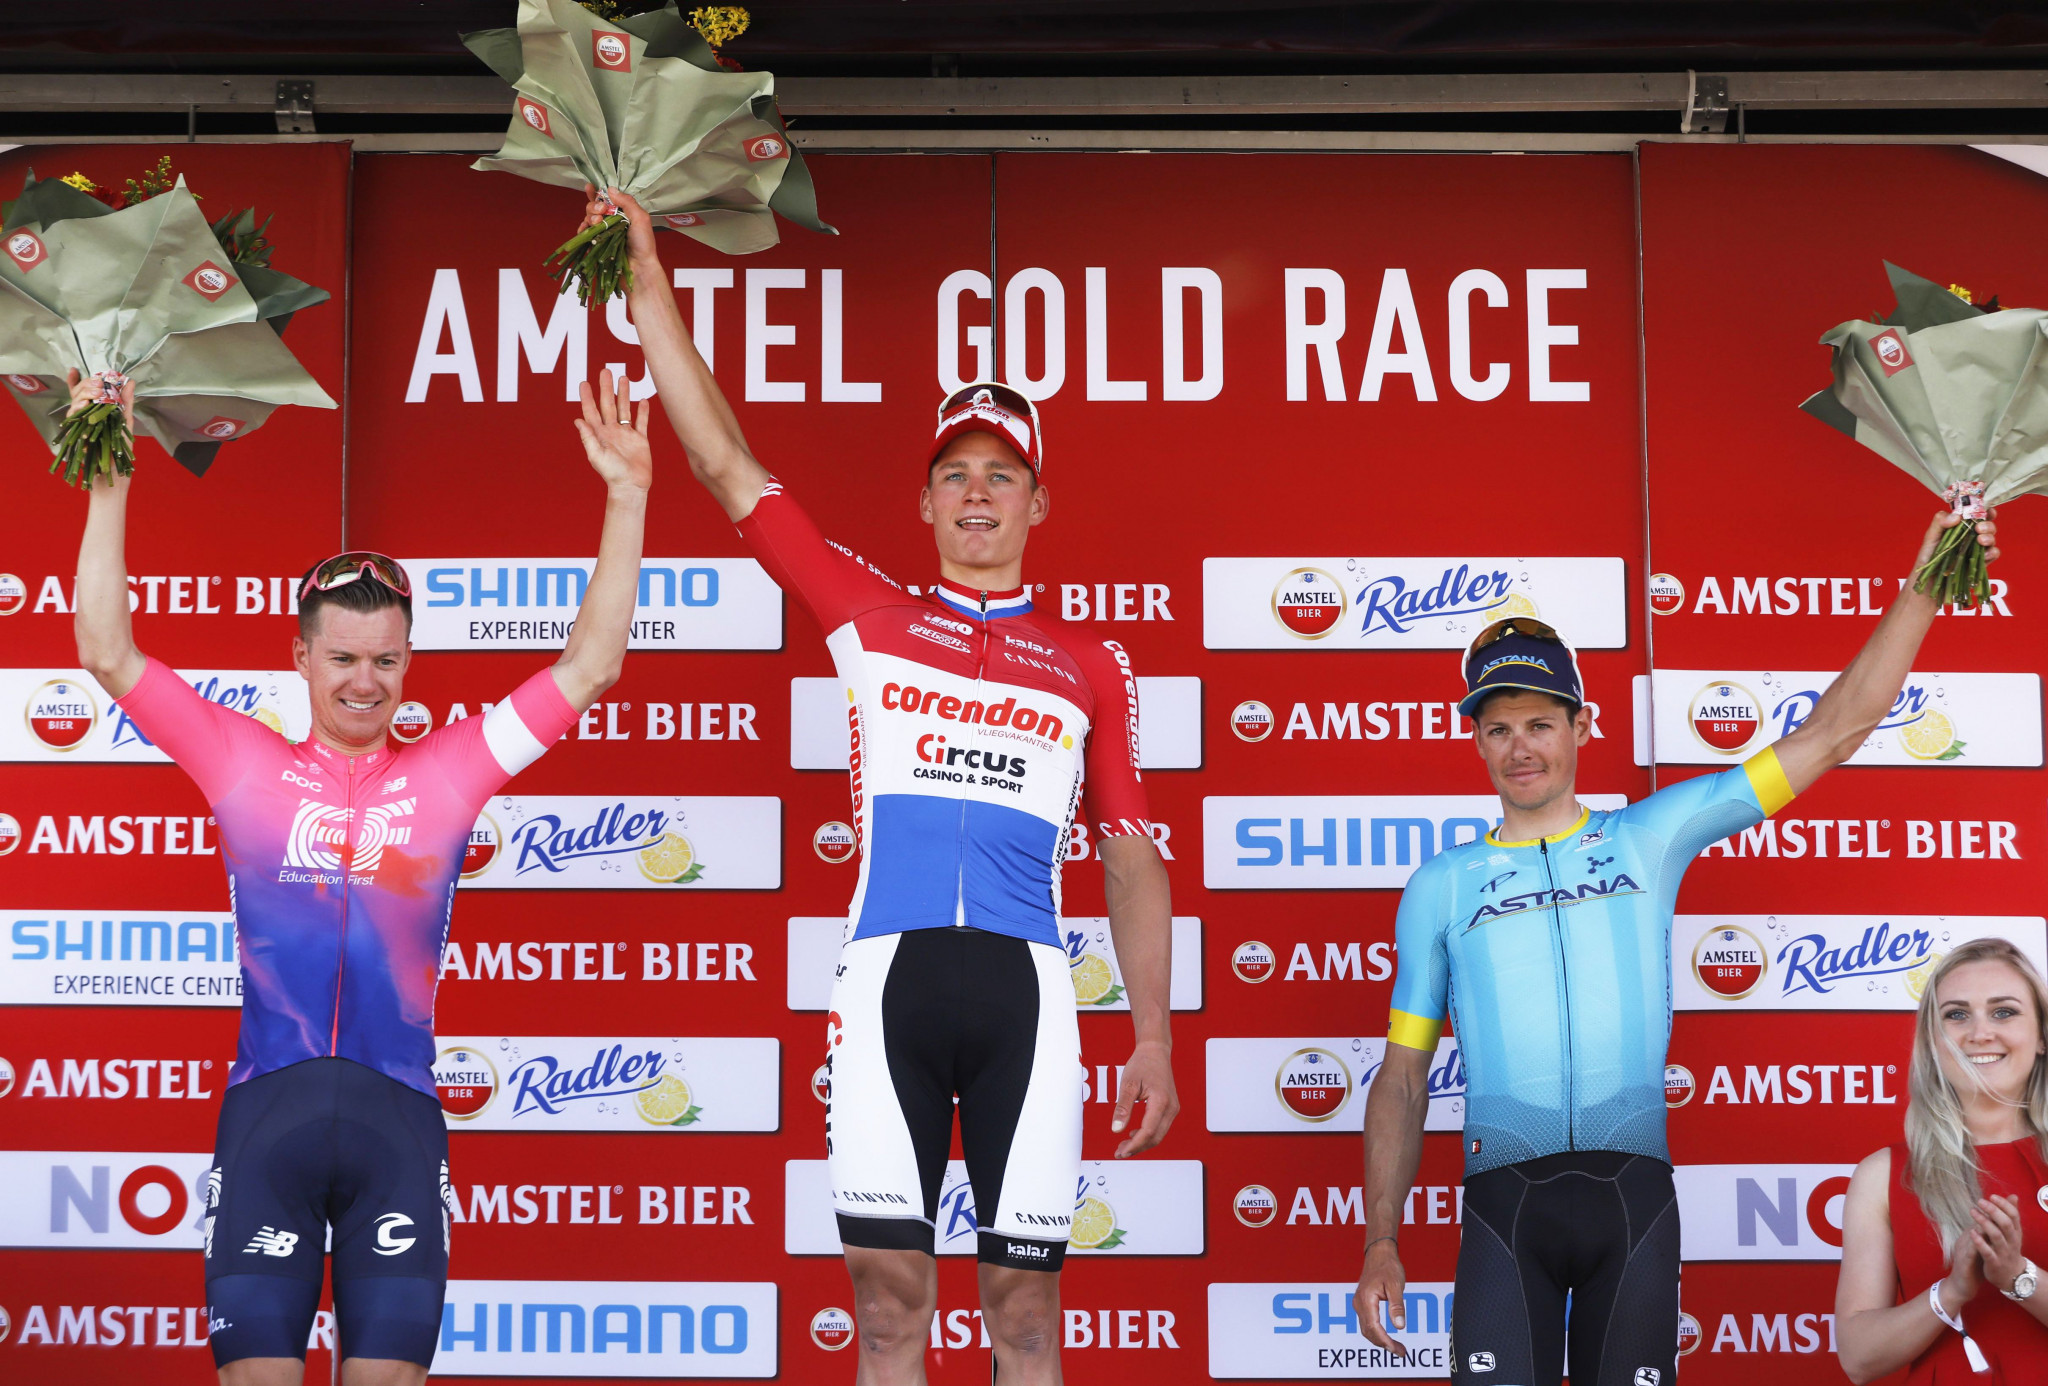 Van der Poel clinches stunning victory at Amstel Gold Race